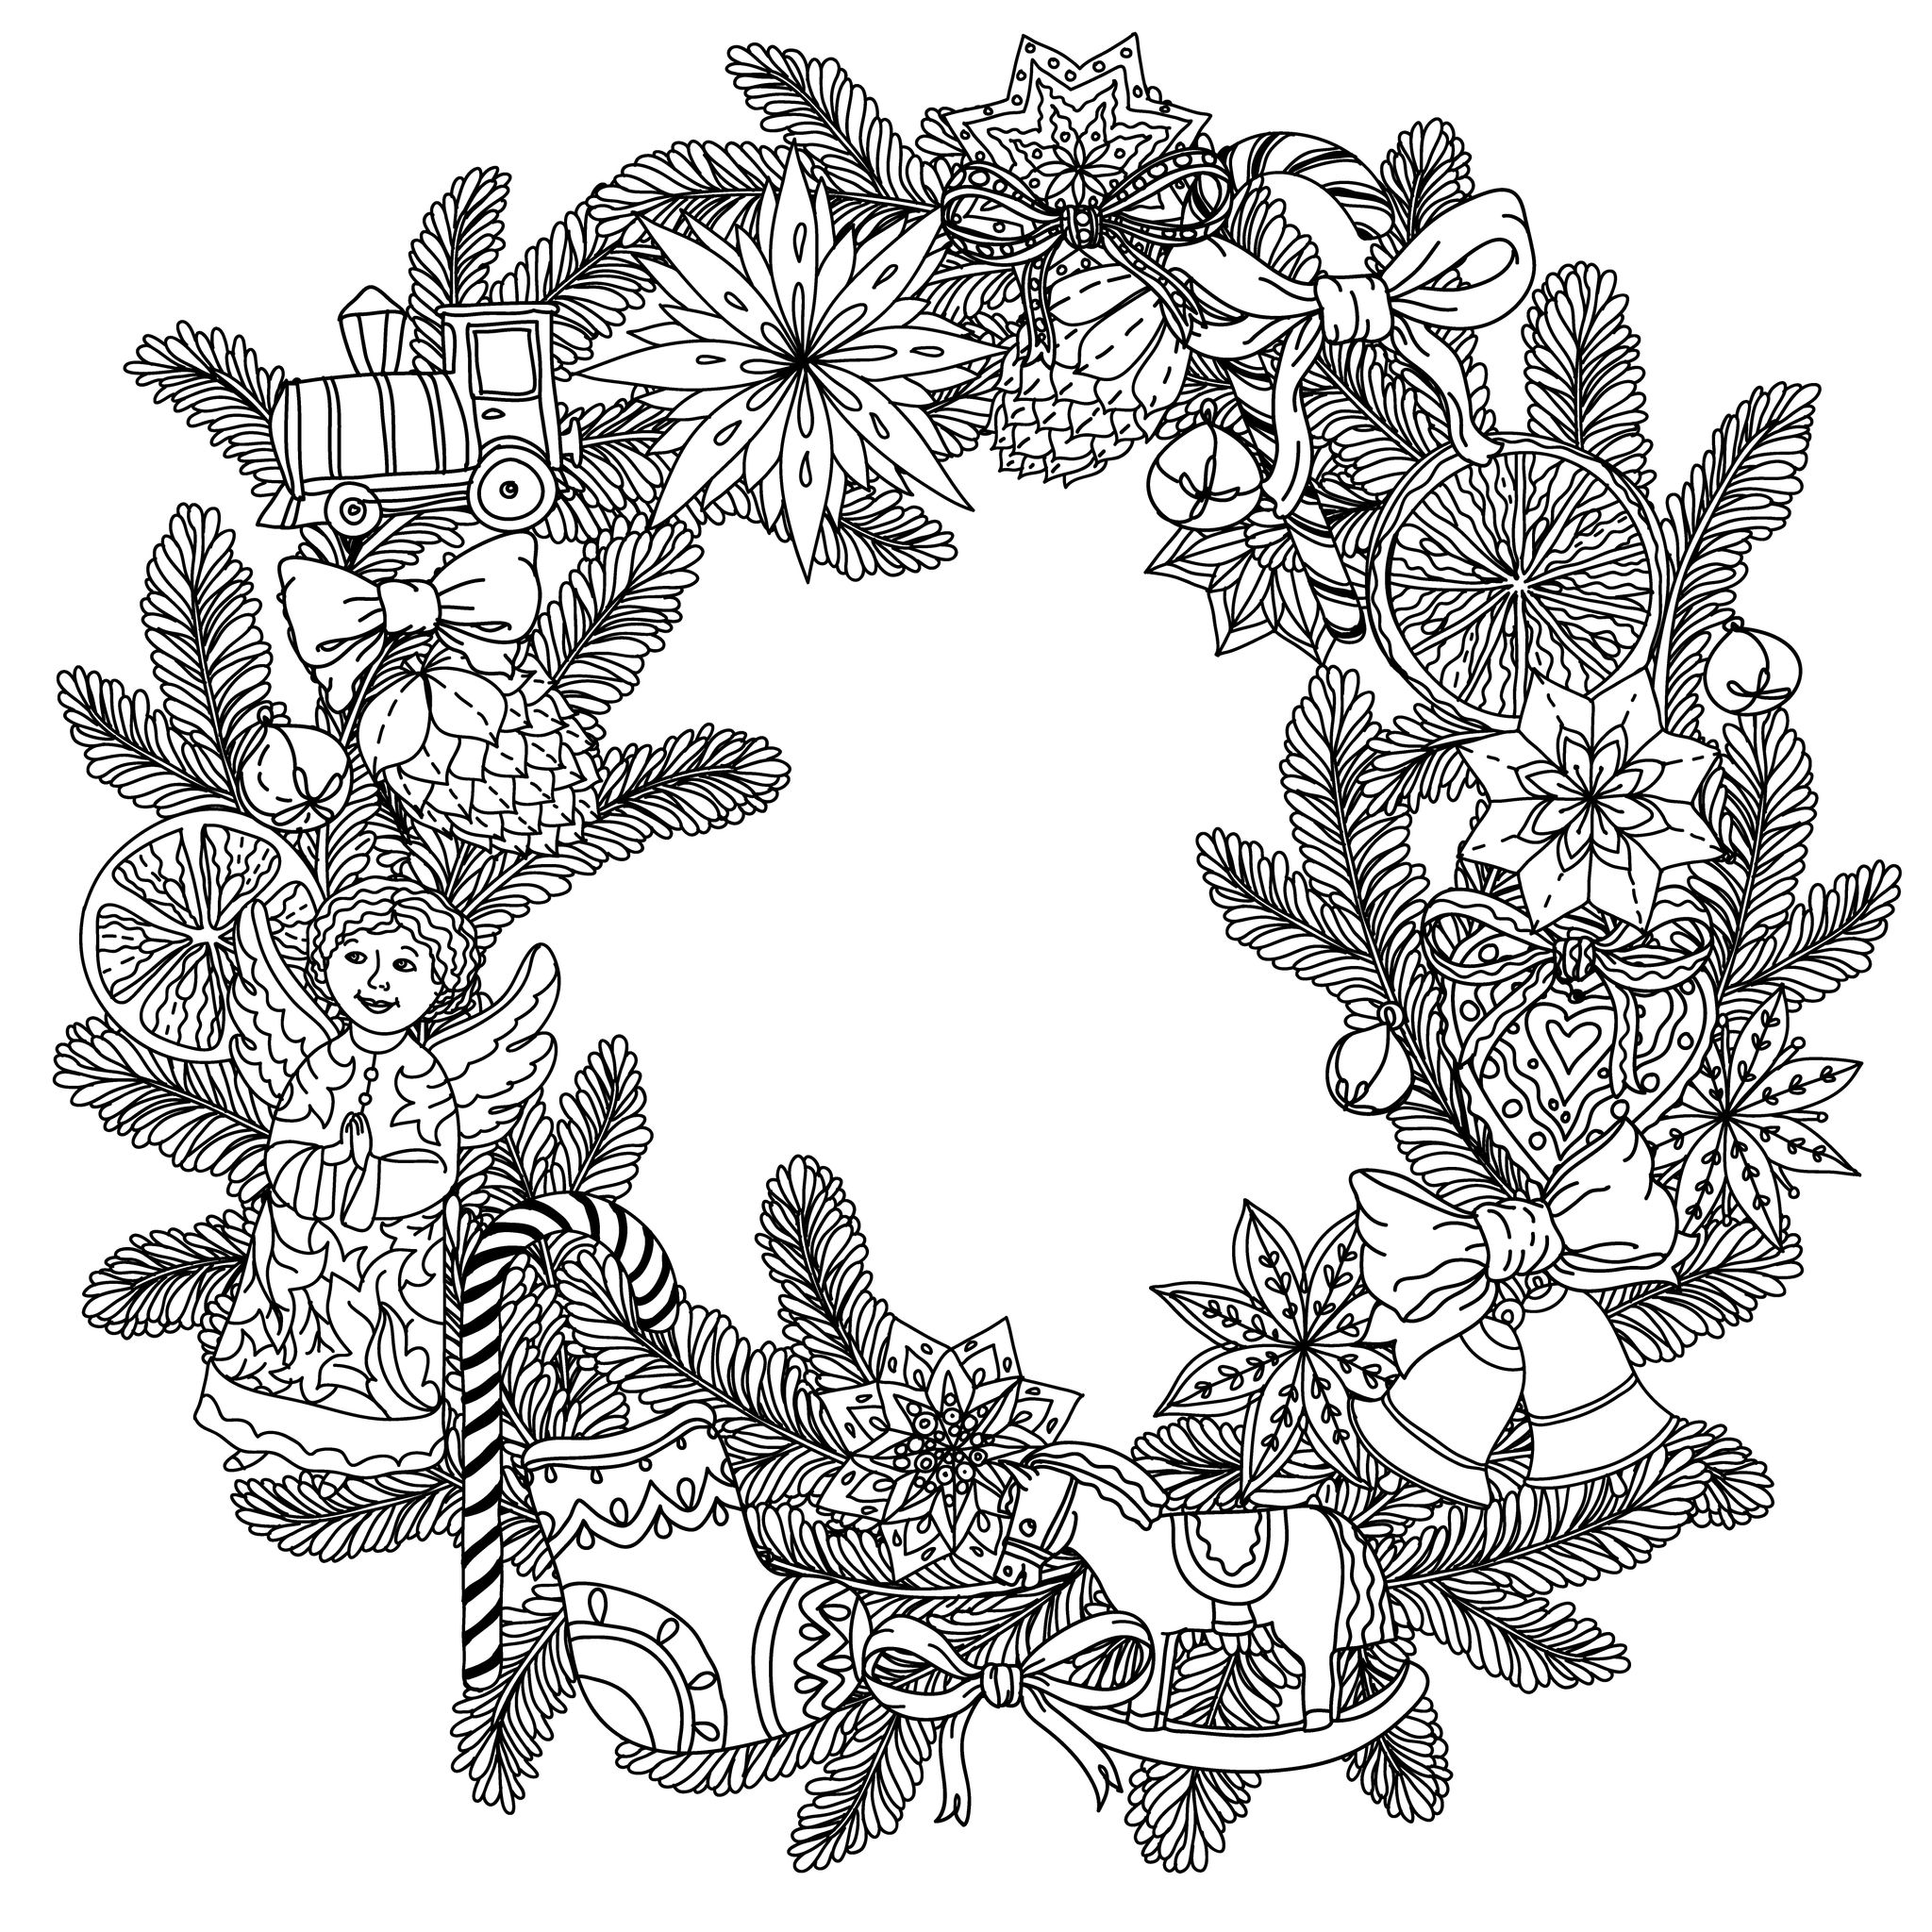 wreath coloring pages christmas wreath coloring page part 7 free resource wreath coloring pages